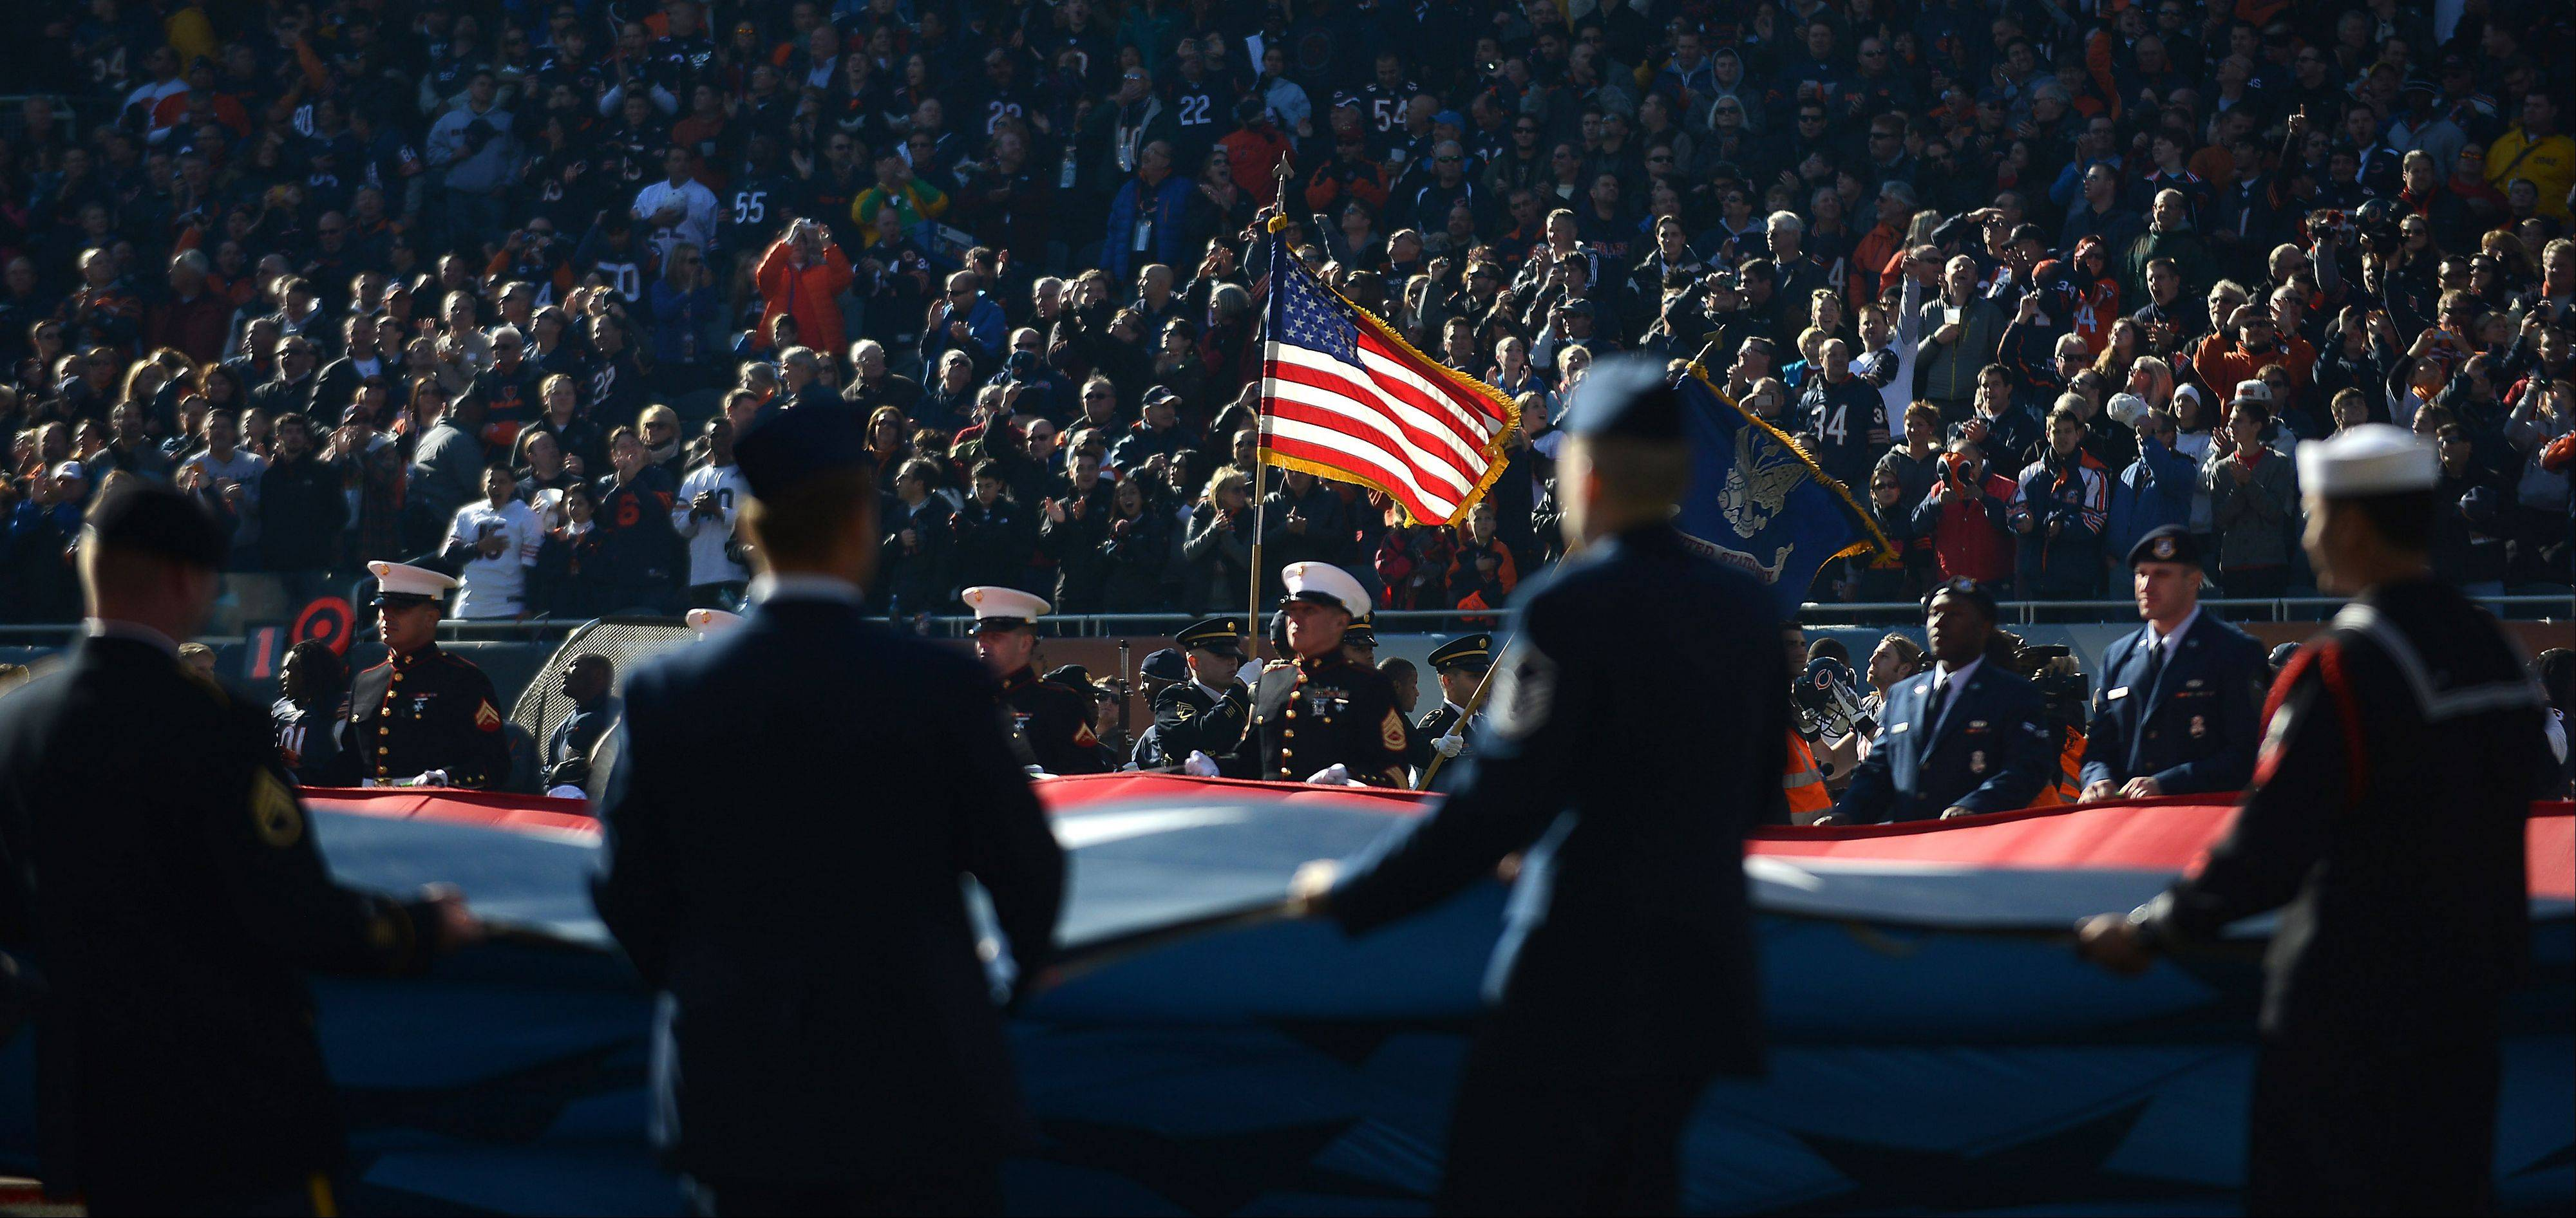 American servicemen and women hold a large American flag during pregame ceremonies before Sunday's game in Chicago.